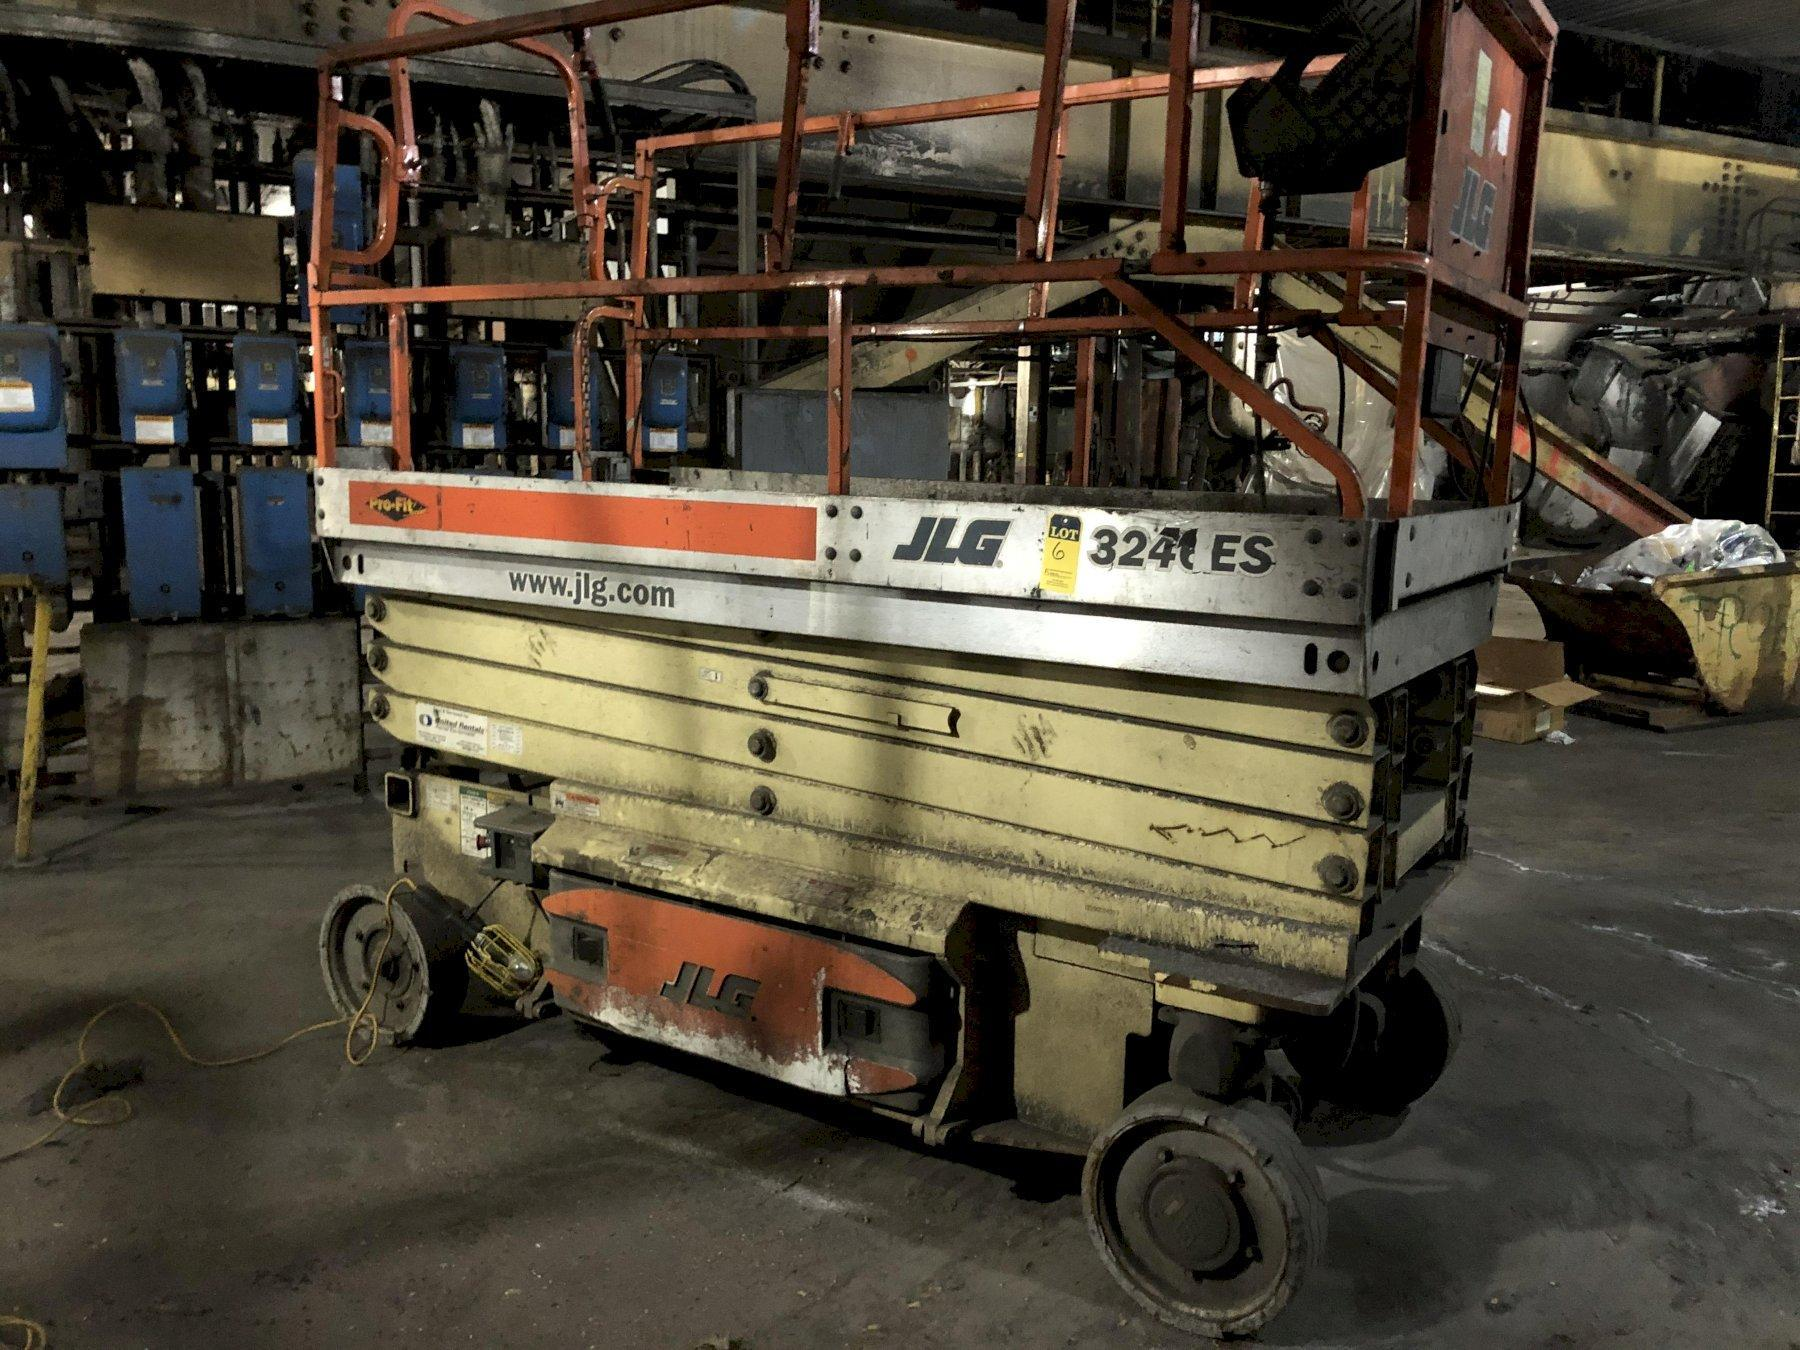 JLG model 3246es self propelled scissor lift s/n 200124017